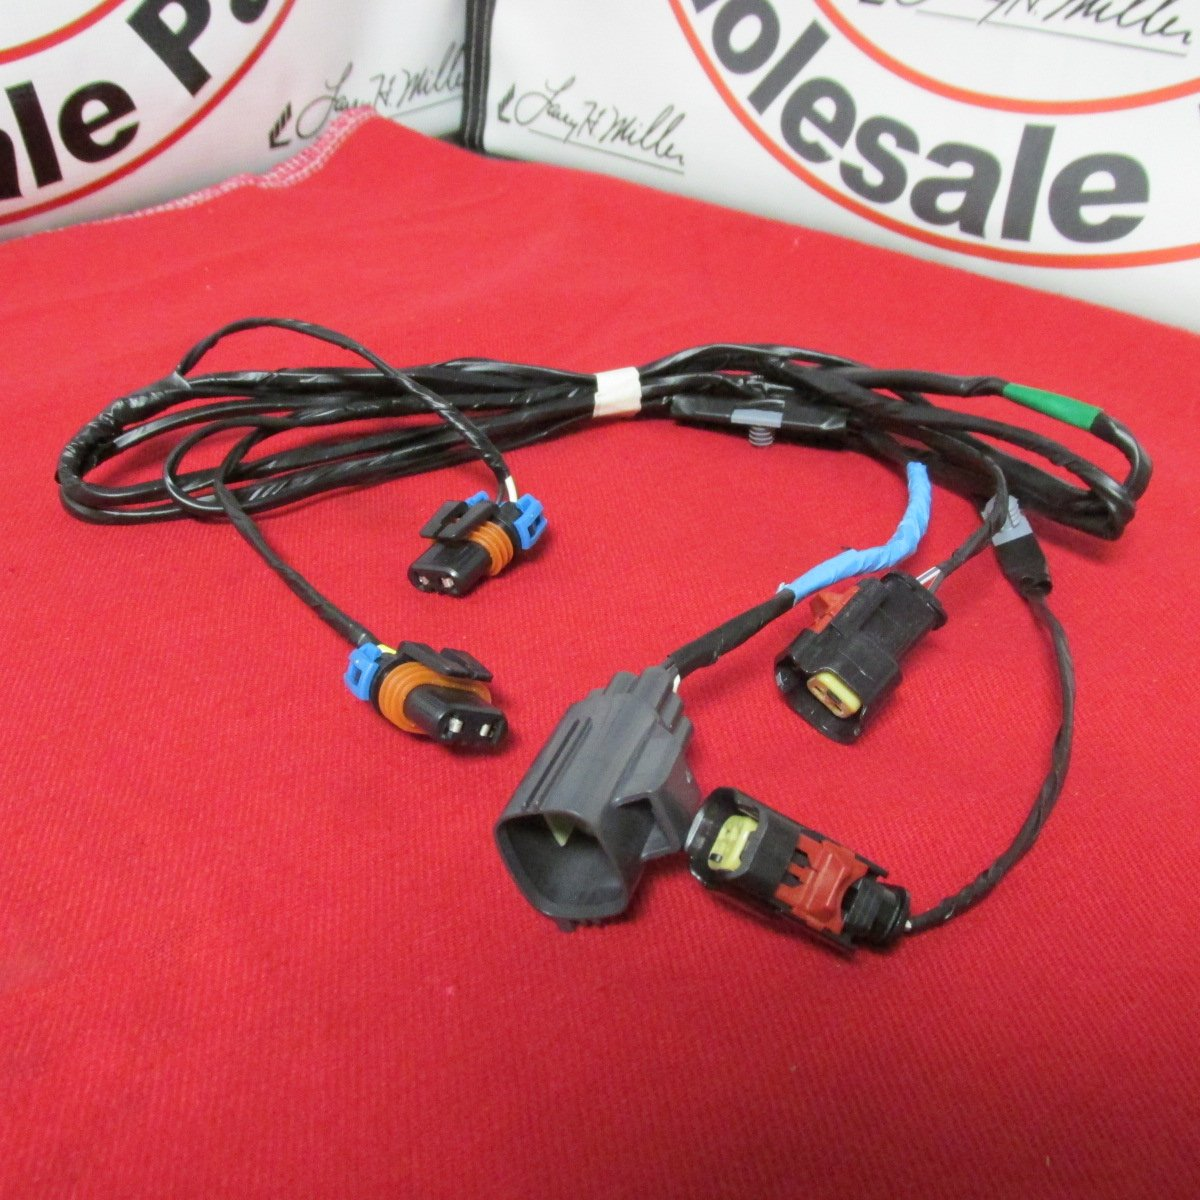 710Nvita7%2BL._SL1200_ amazon com 2005 2010 chrysler 300 front fog lamp wiring harness chrysler wiring harness at bakdesigns.co